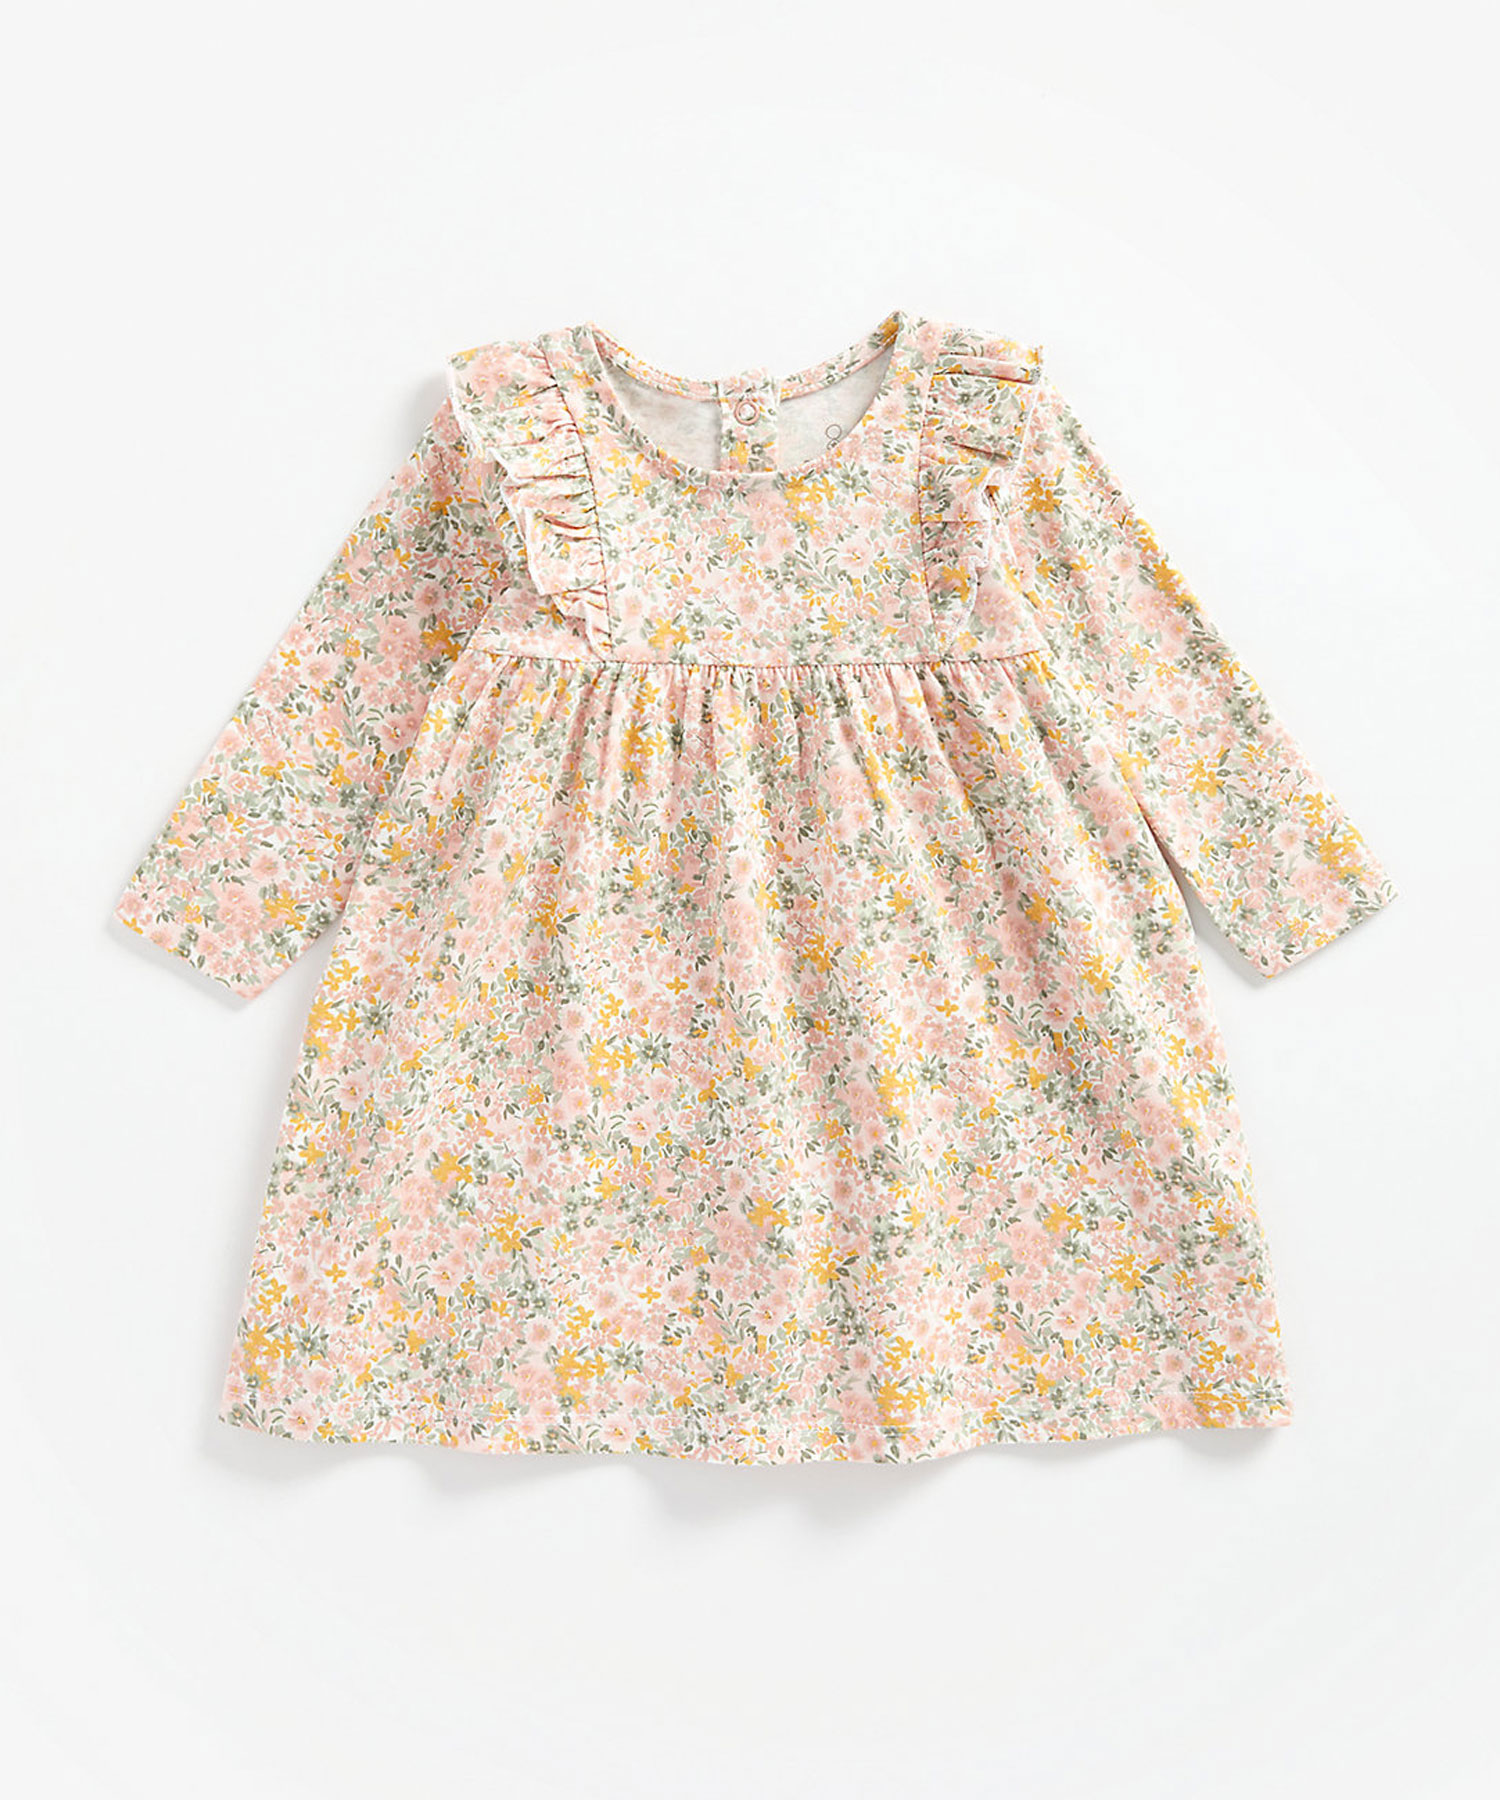 Mothercare | Girls Full Sleeves Dress Floral Print - Multicolor